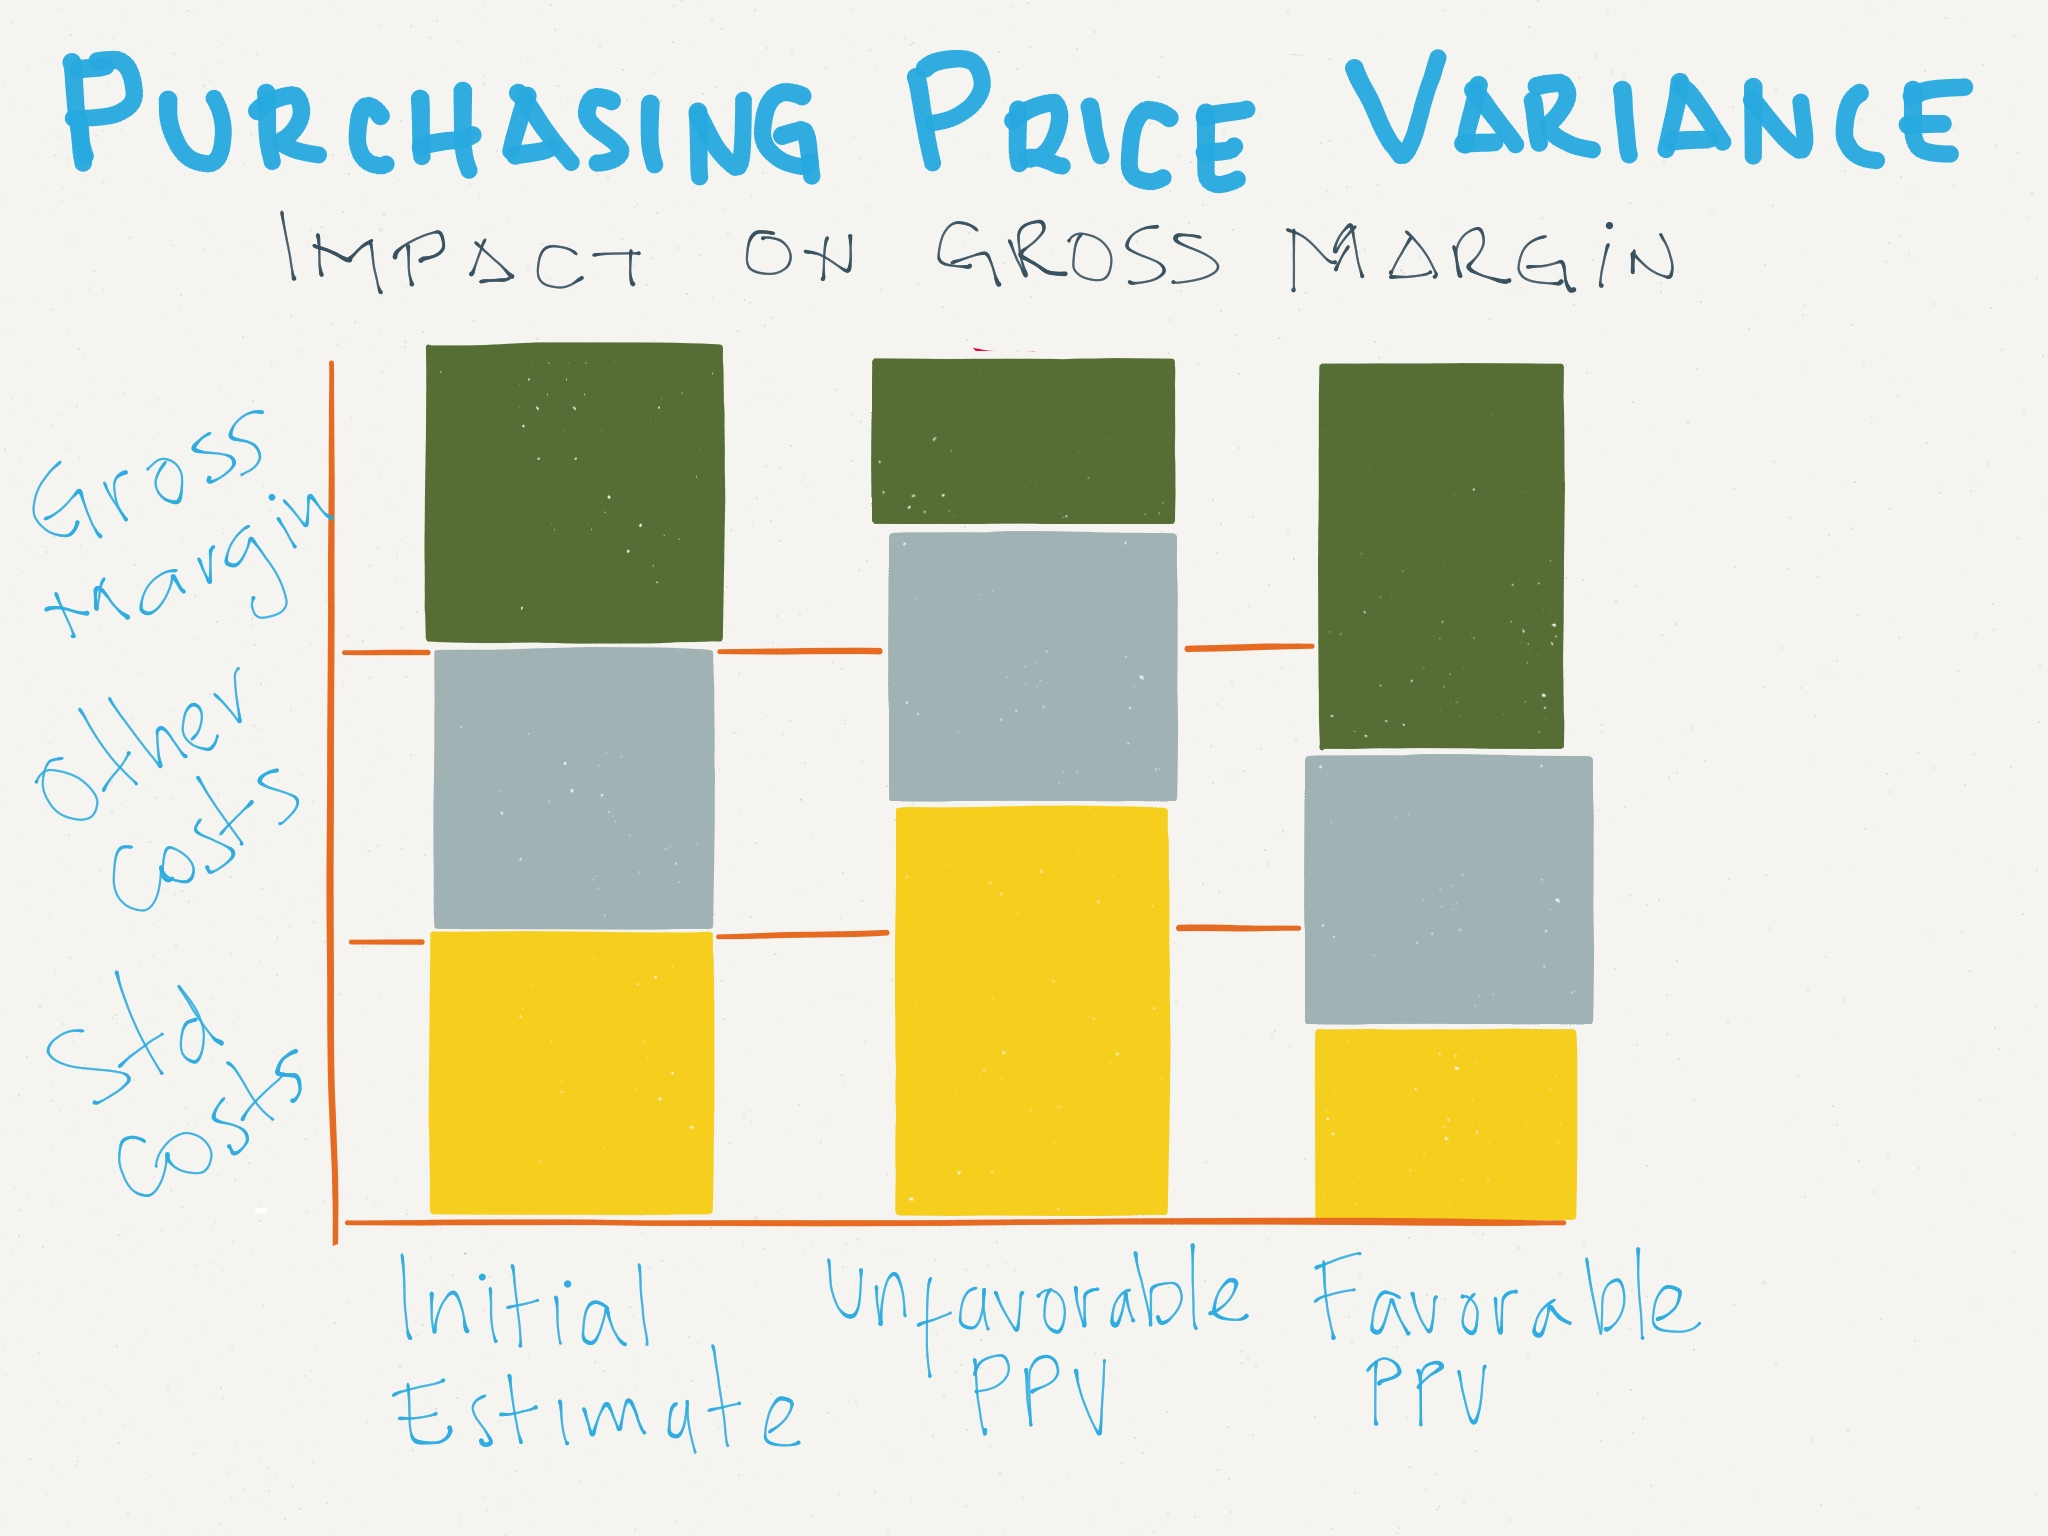 invoice price variance ppv purchasing price variance scn 2048 X 1536